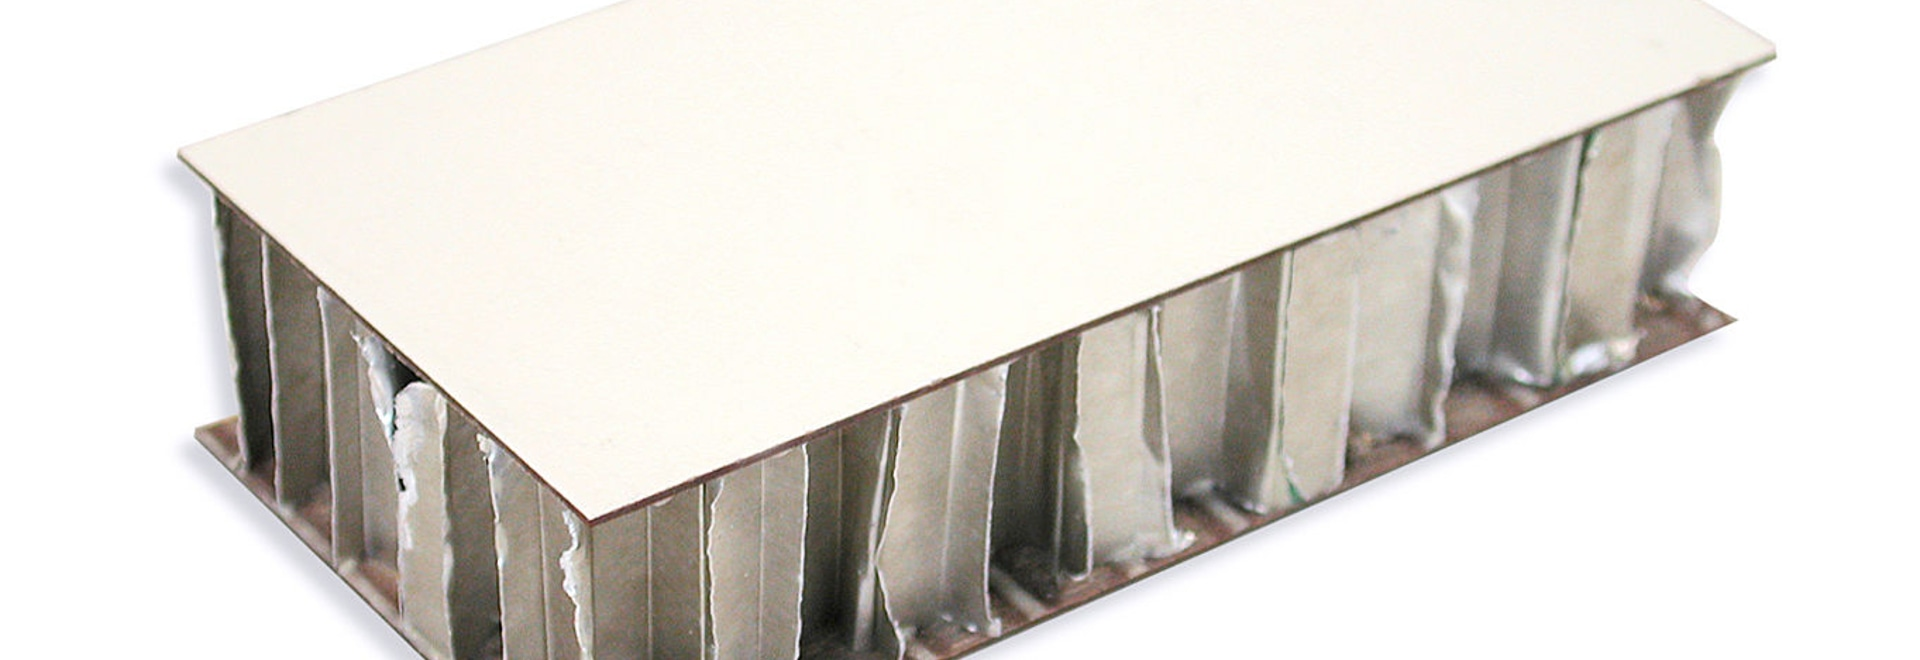 Sandwich Panel Hpl And Aluminium With Imo Med Certification Cel